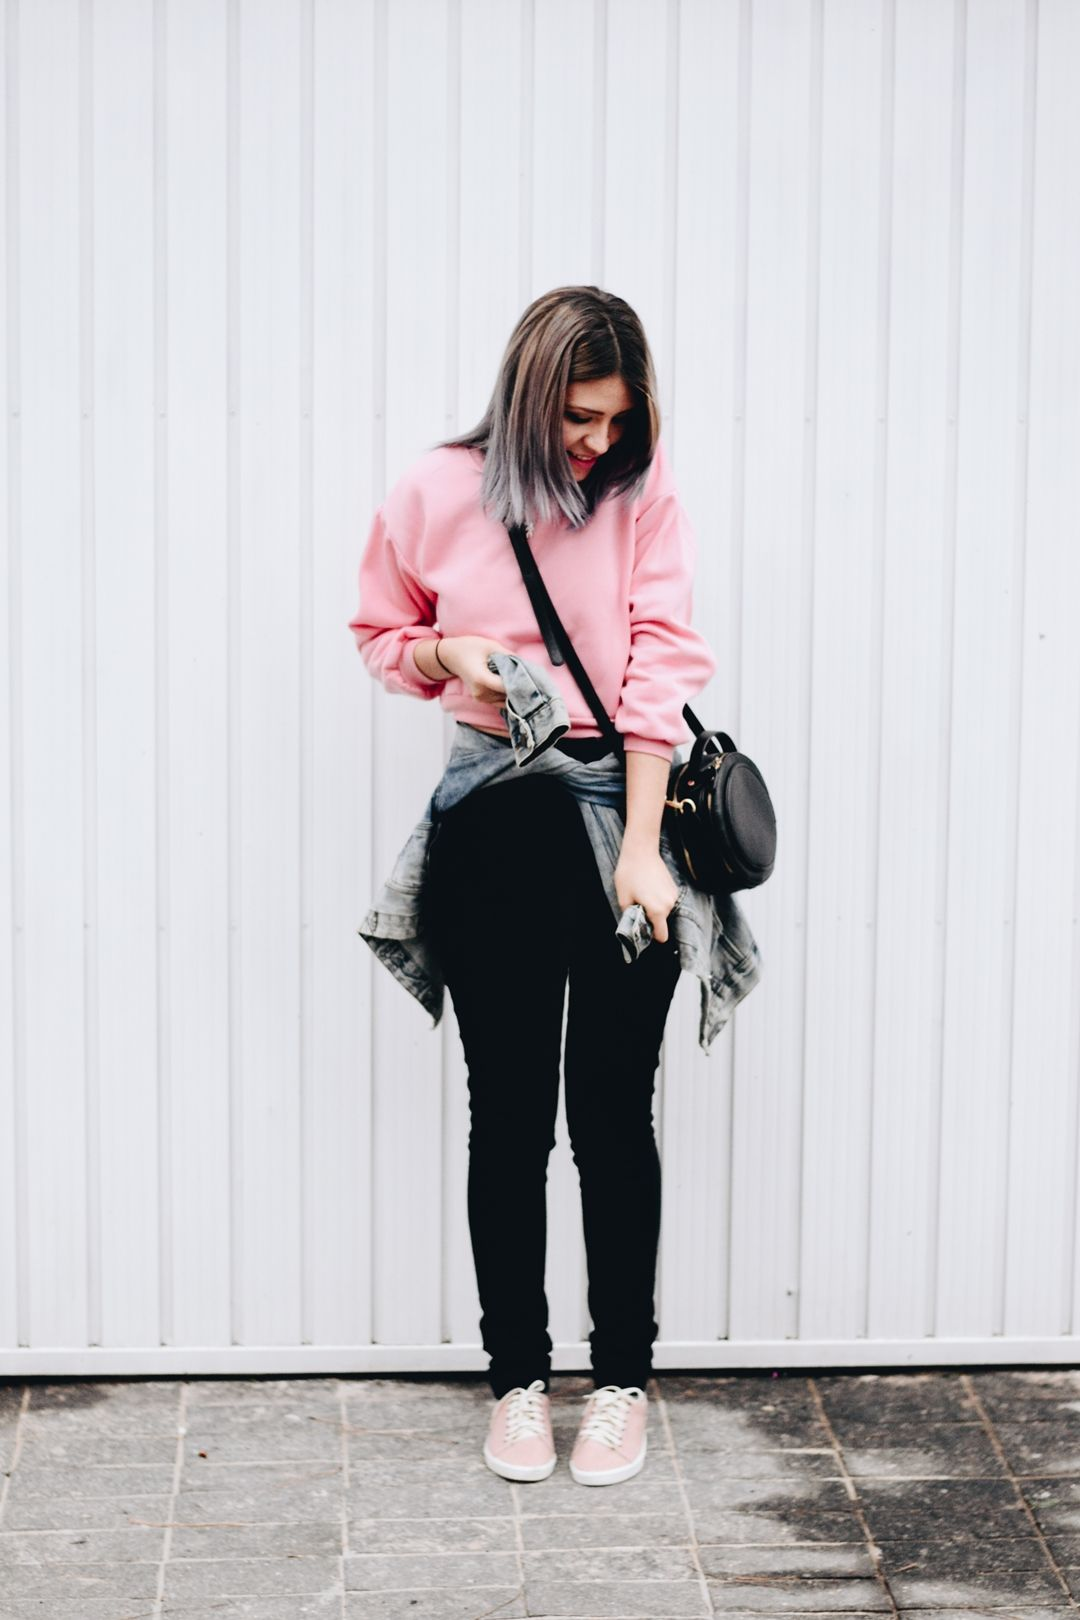 Pink dress with jean jacket  Pink  Tatuajes de rosario  Pinterest  Skinny Winter and Clothing